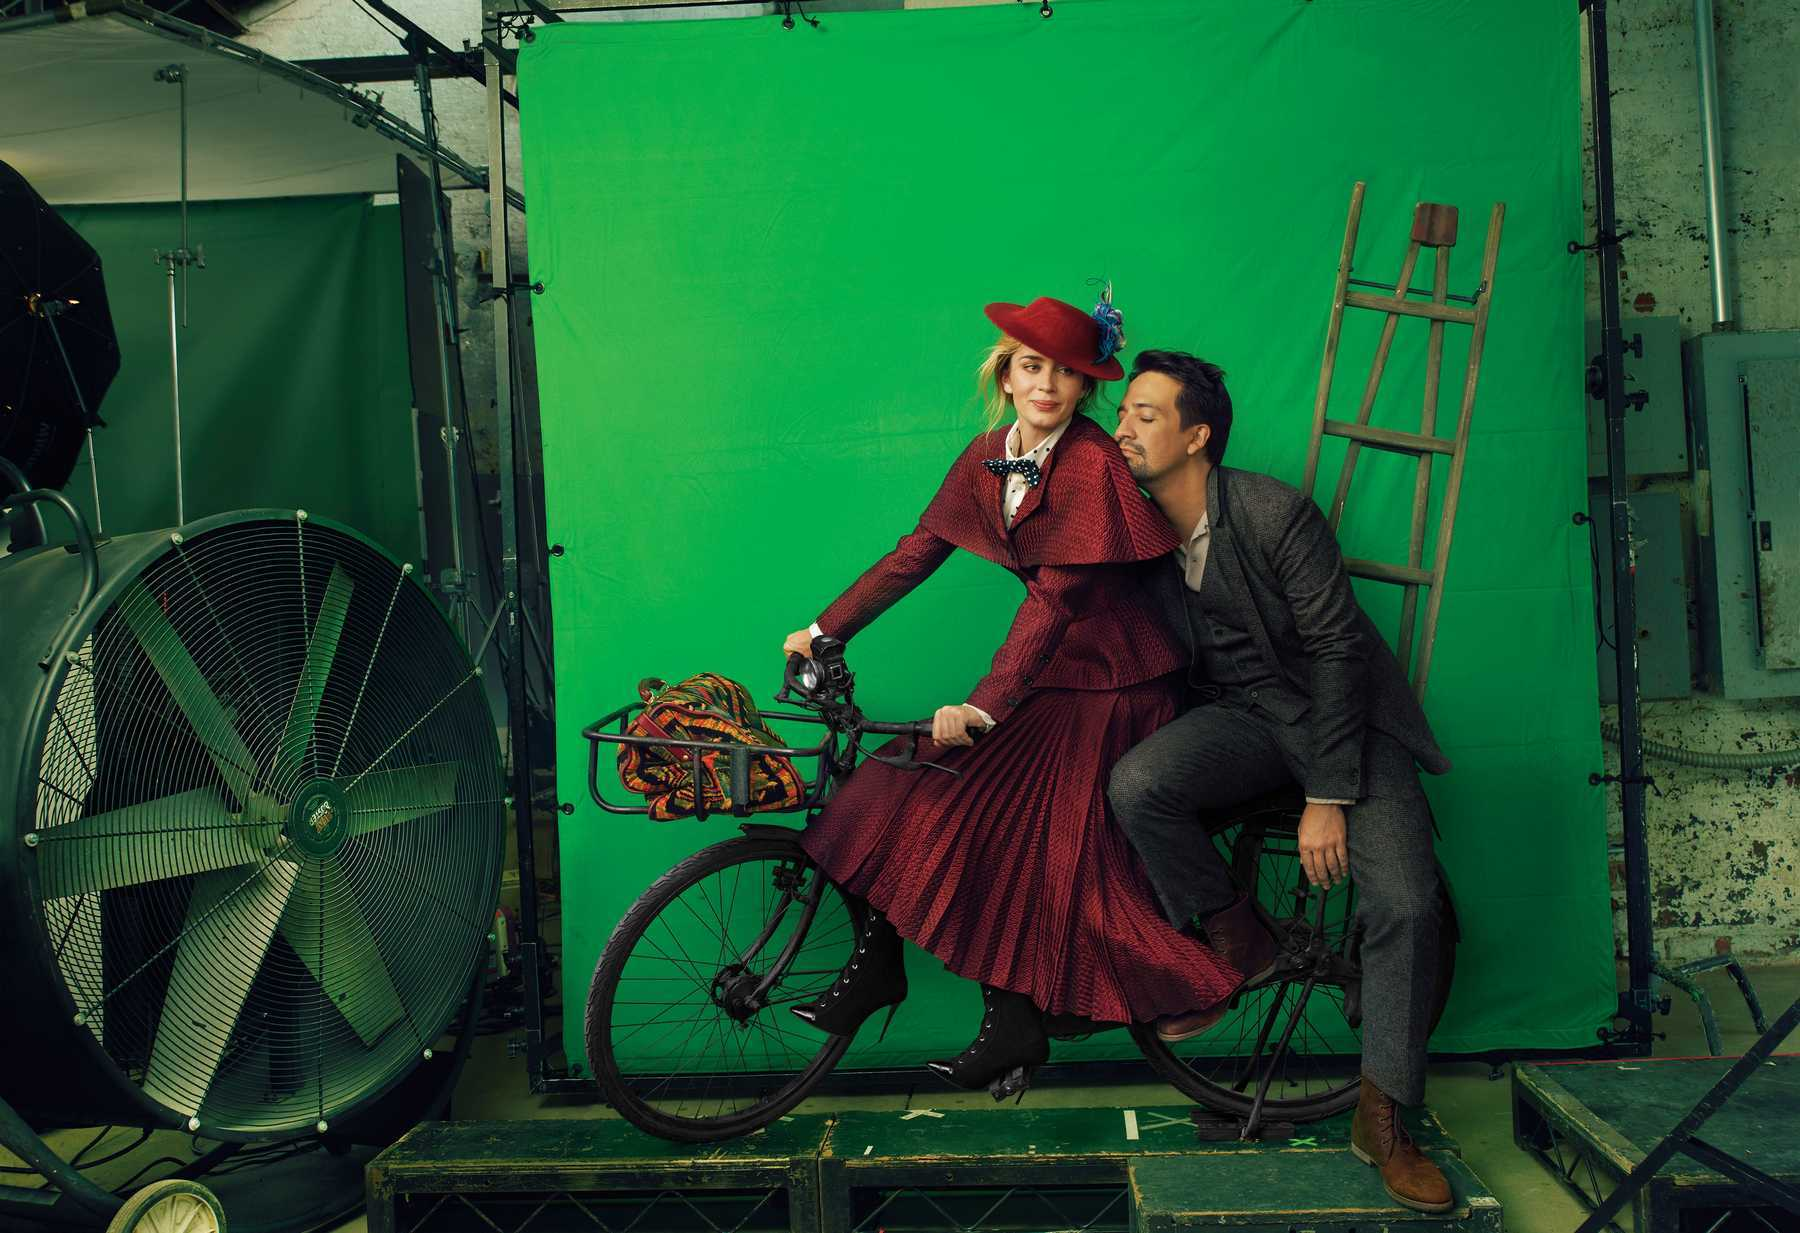 Emily-Blunt-Lin-Manuel-Miranda-photographed-by-Annie-Leibovitz-for-Vogue-December-201887851578_emily-06.jpg